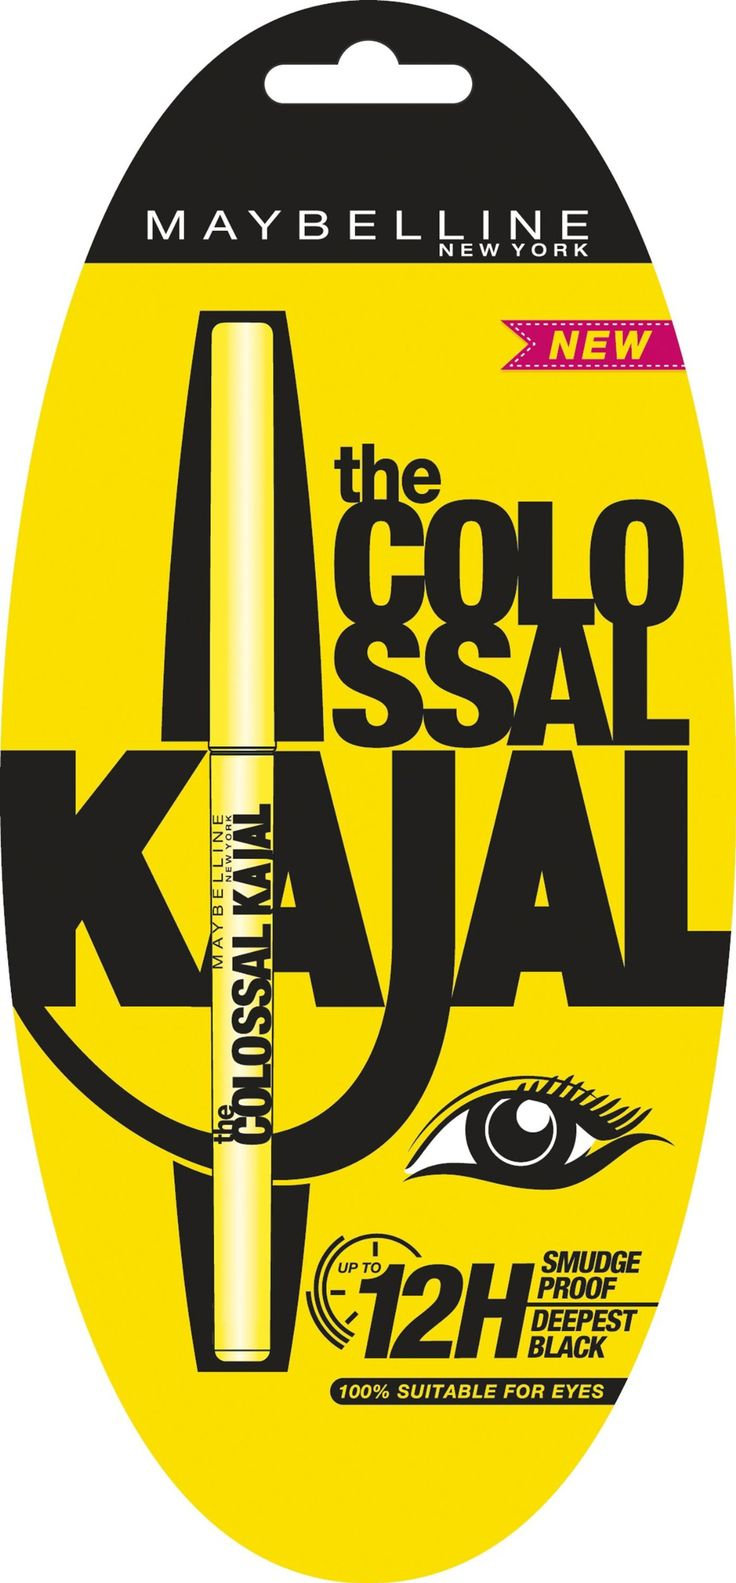 Maybelline The Colossal Kajal Eyeliner Pencil - Black